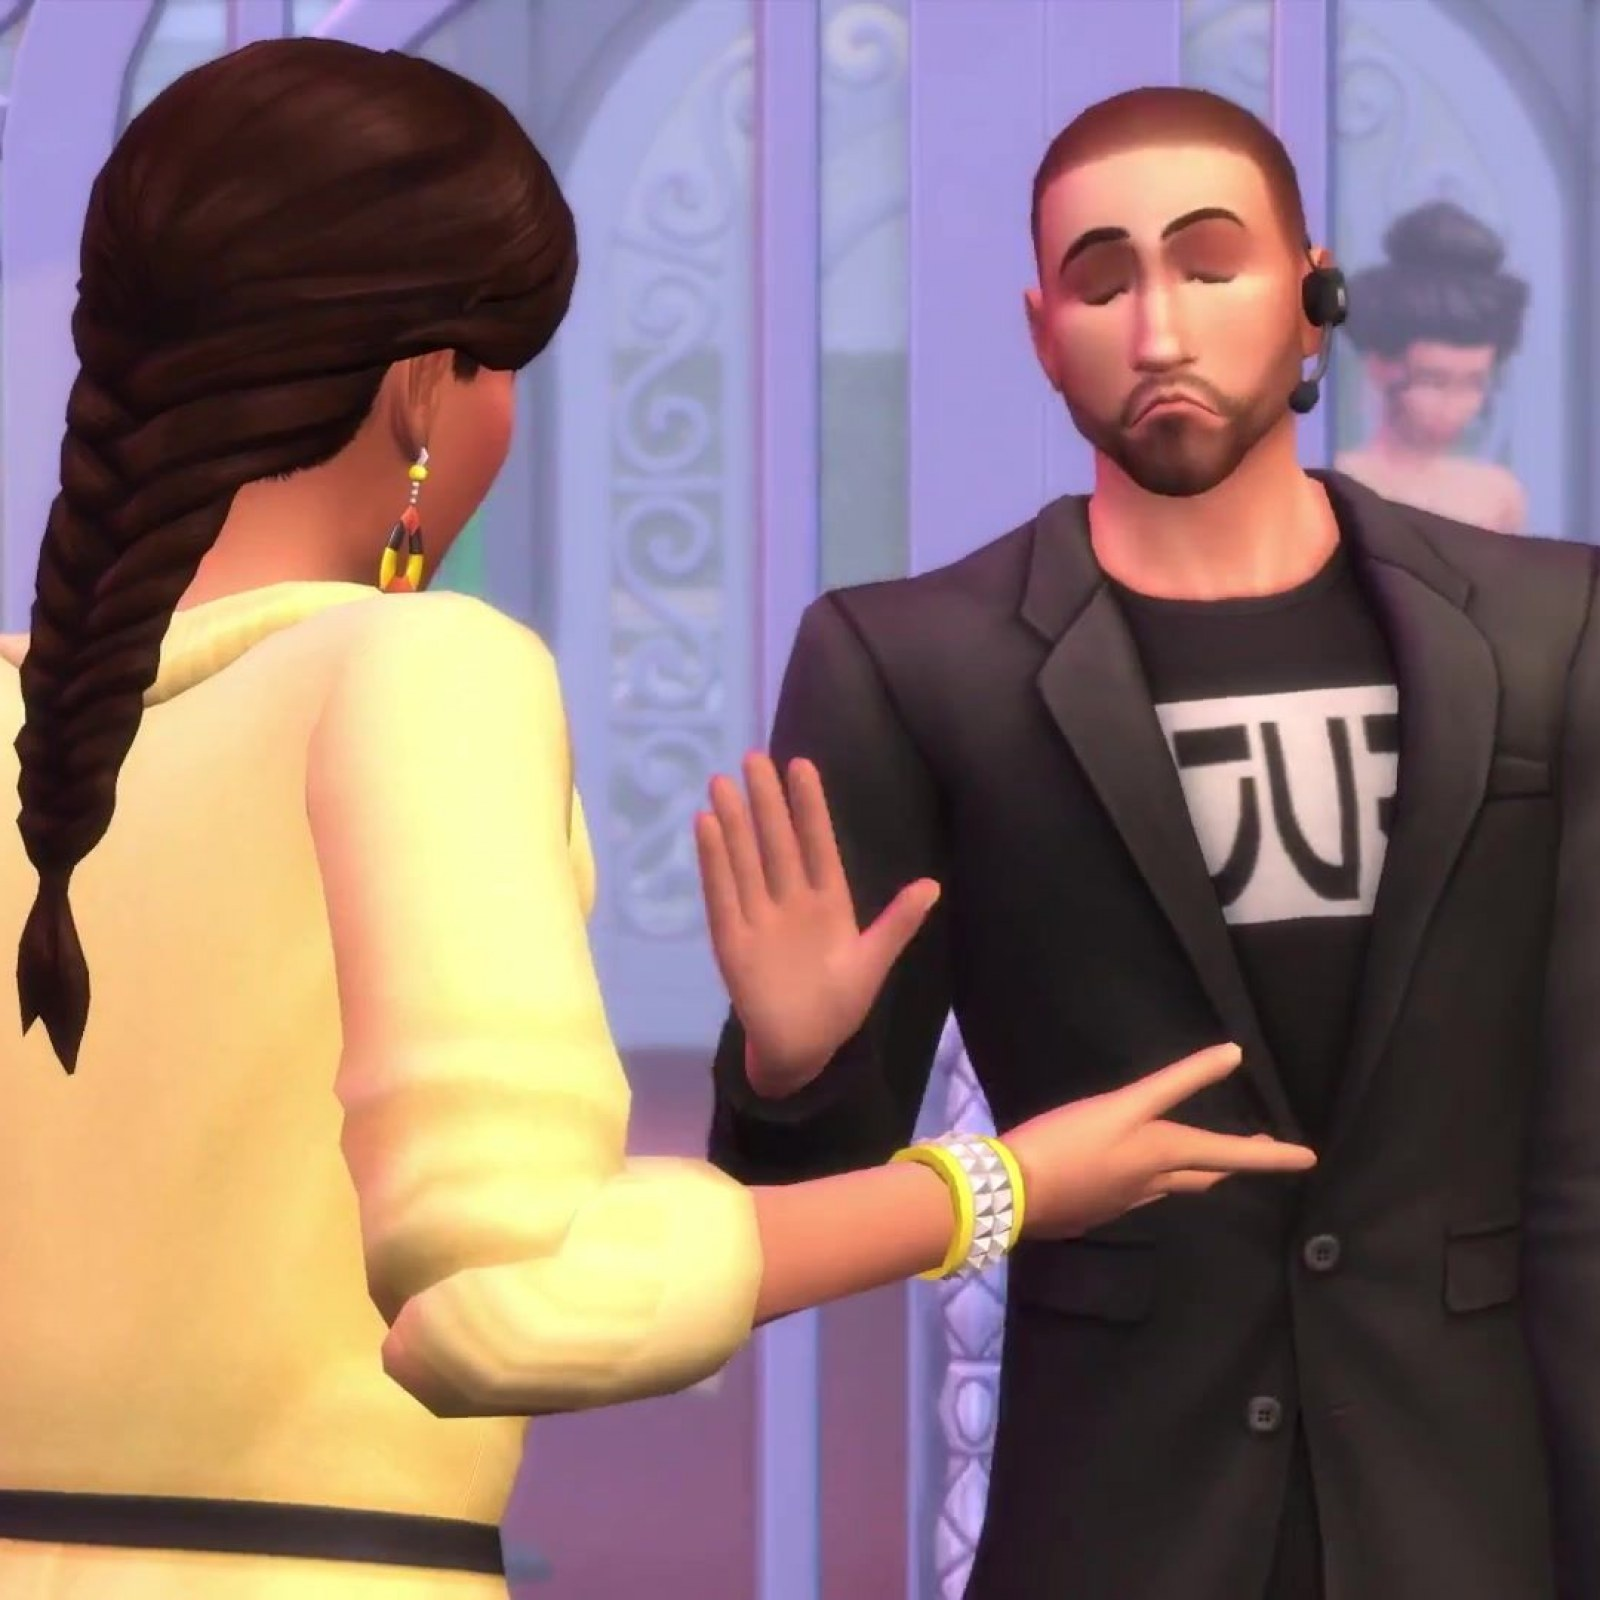 Sims 4: Get Famous' Lead Producer Talks Side Sims and Reputation